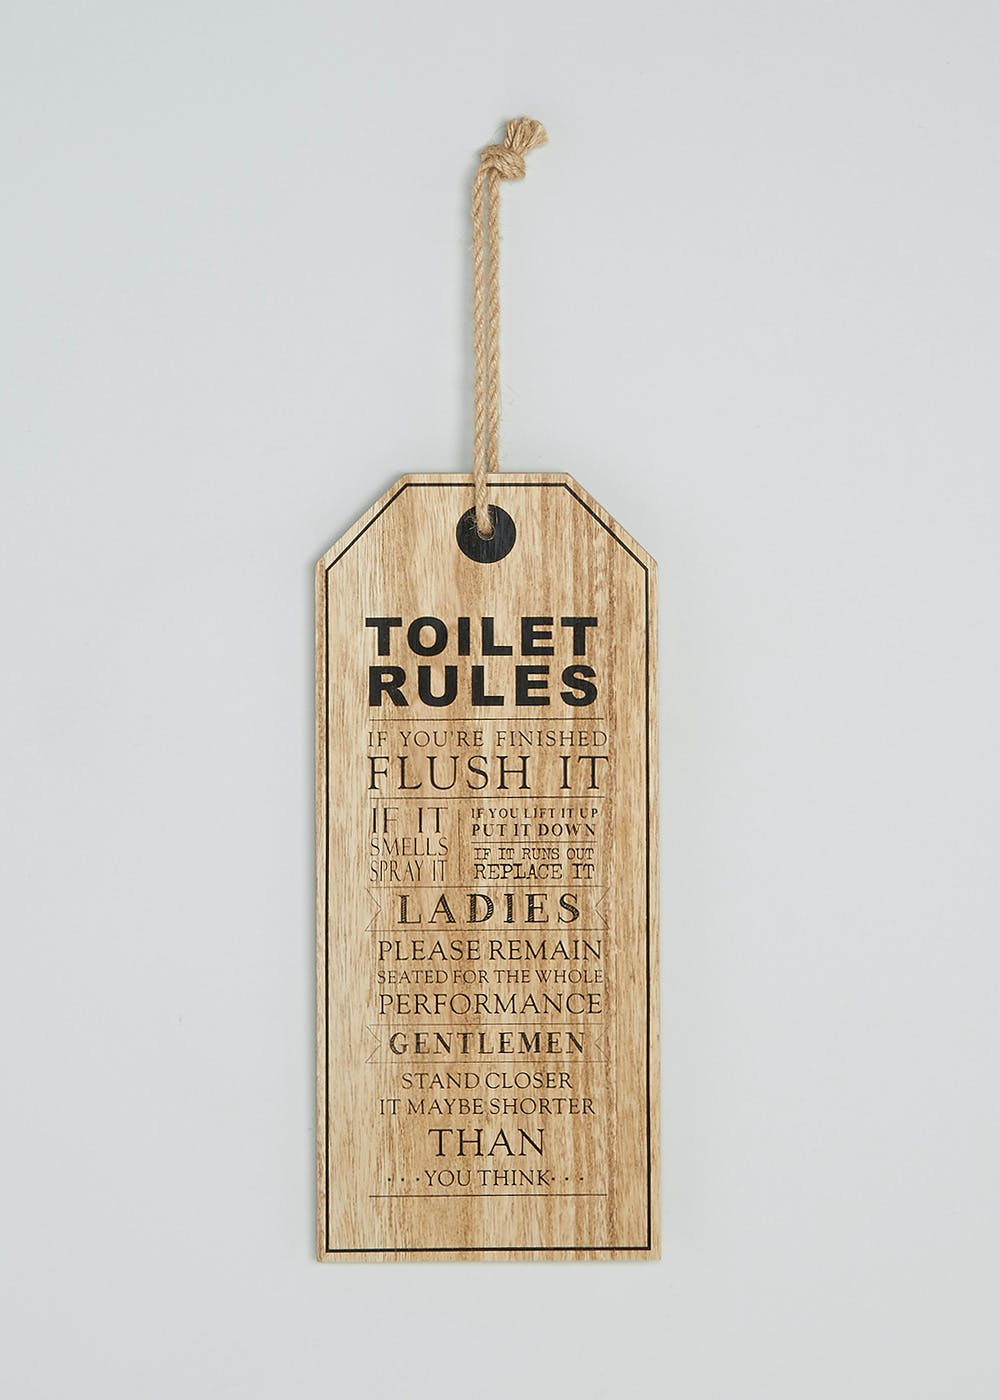 Toilet Rules Wall Decoration (40cm x 17cm)